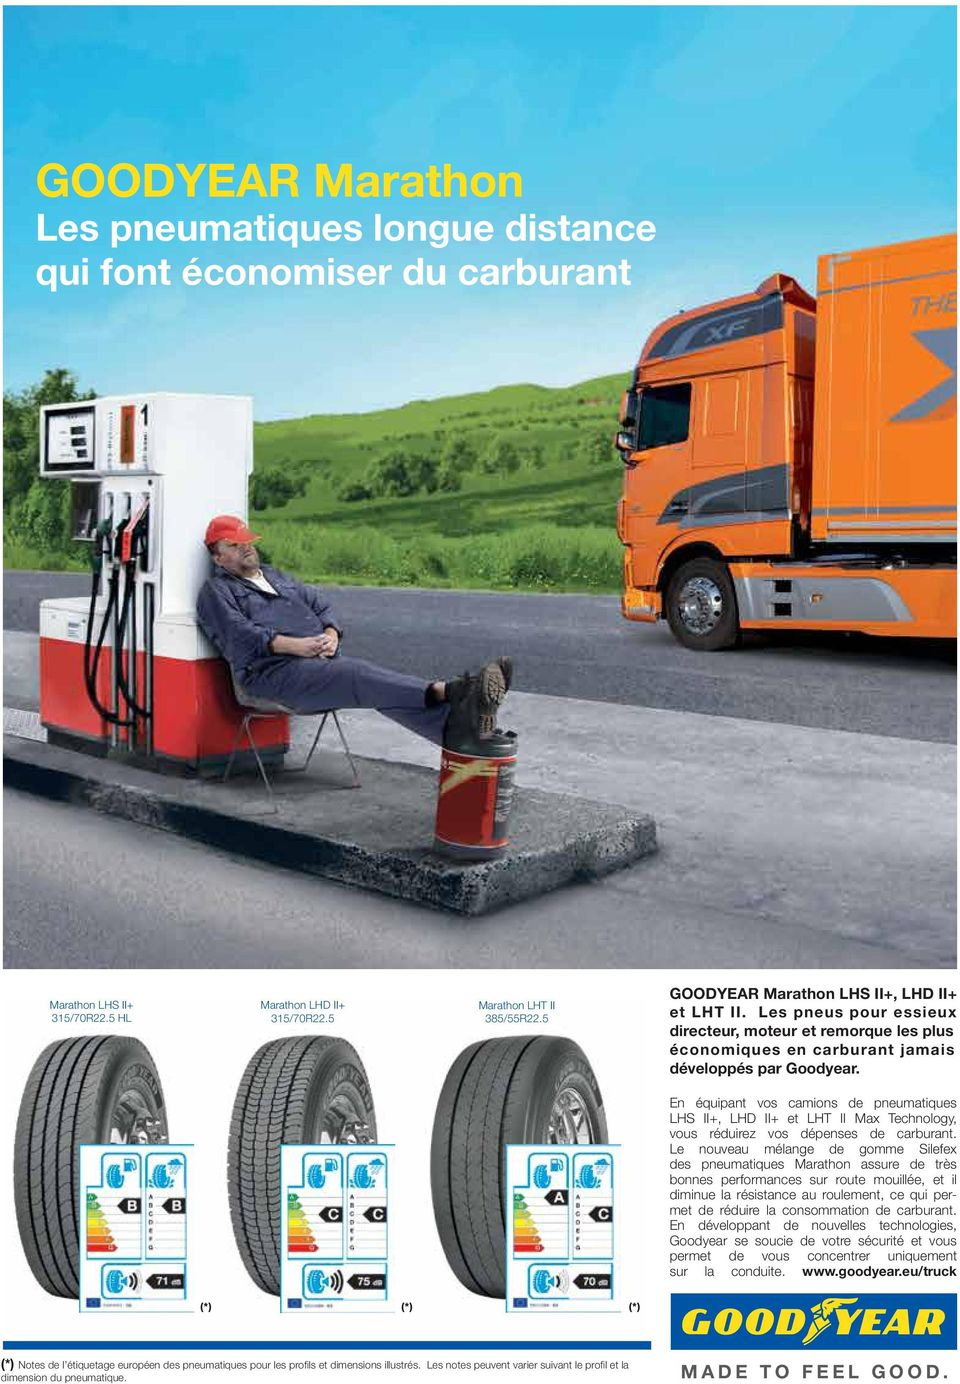 moteur The most et remorque fuel-efficient les steer, plus économiques en carburant jamais drive and trailer tires we ve ever made. développés par Goodyear.